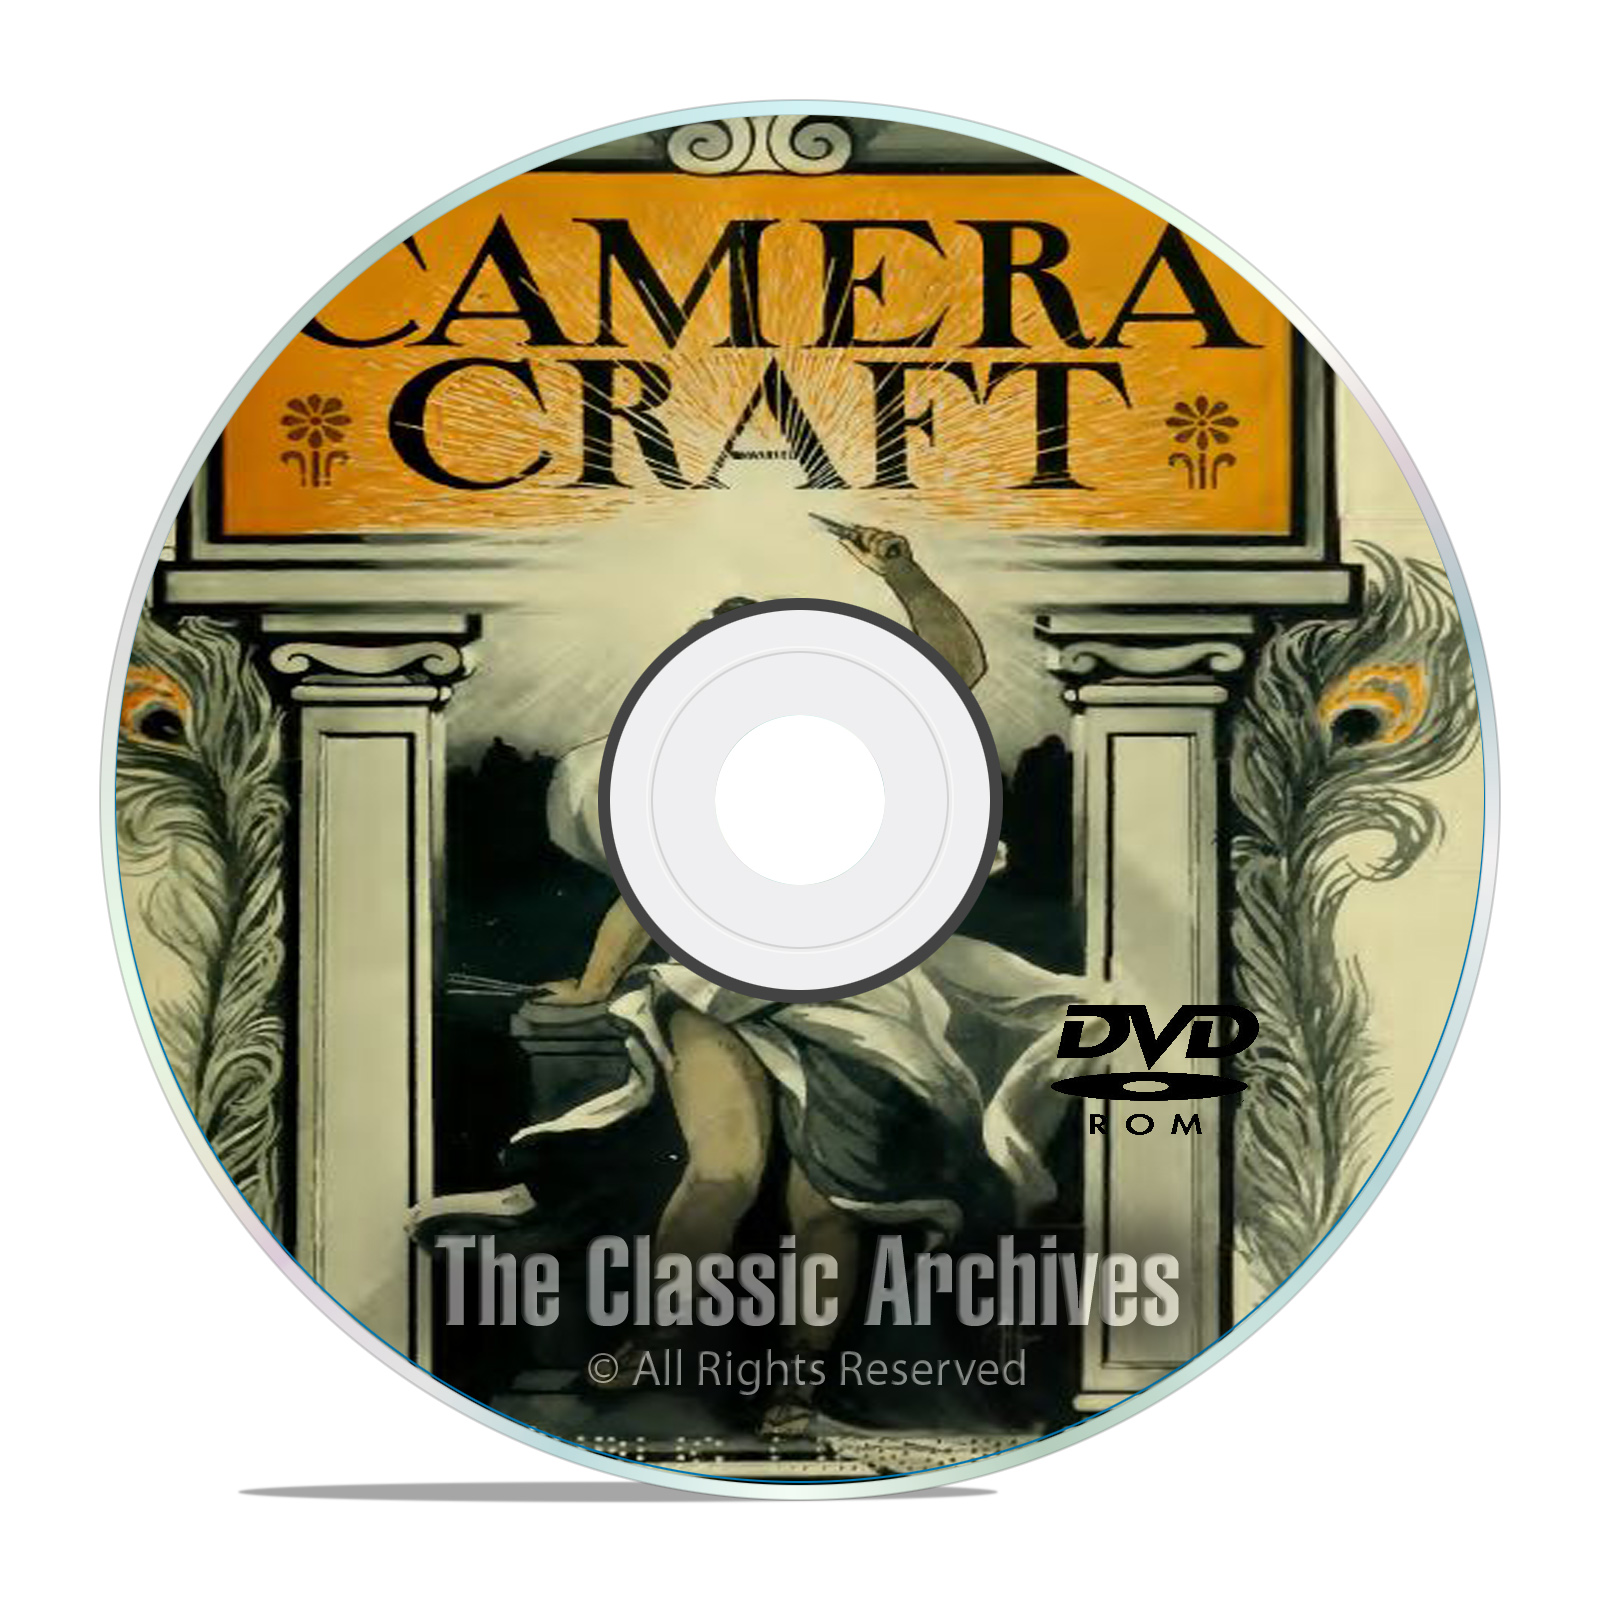 Camera Craft Magazine, 490 back issues, World Photography History, PDF DVD